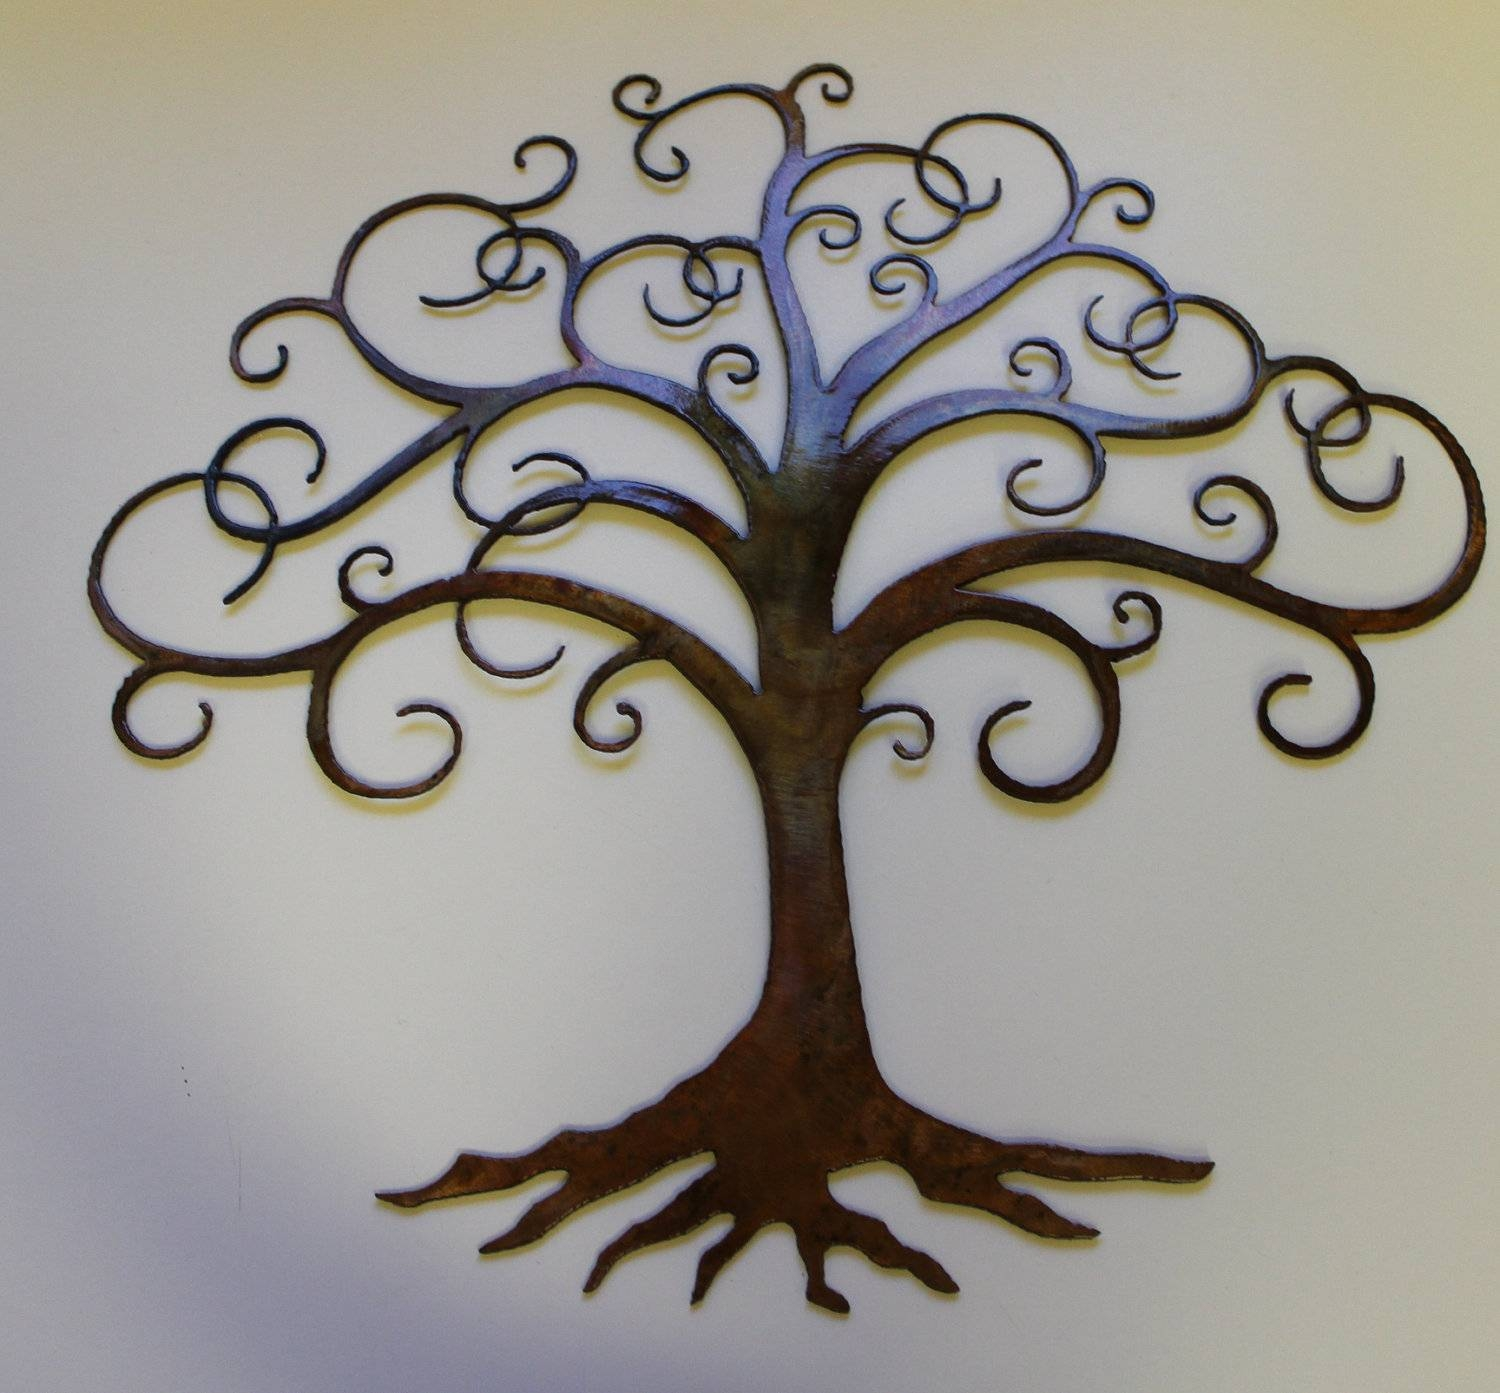 Wall Art Designs: Metal Wall Art Trees Breathtaking Large Metal Within Current Trees Metal Wall Art (View 16 of 20)